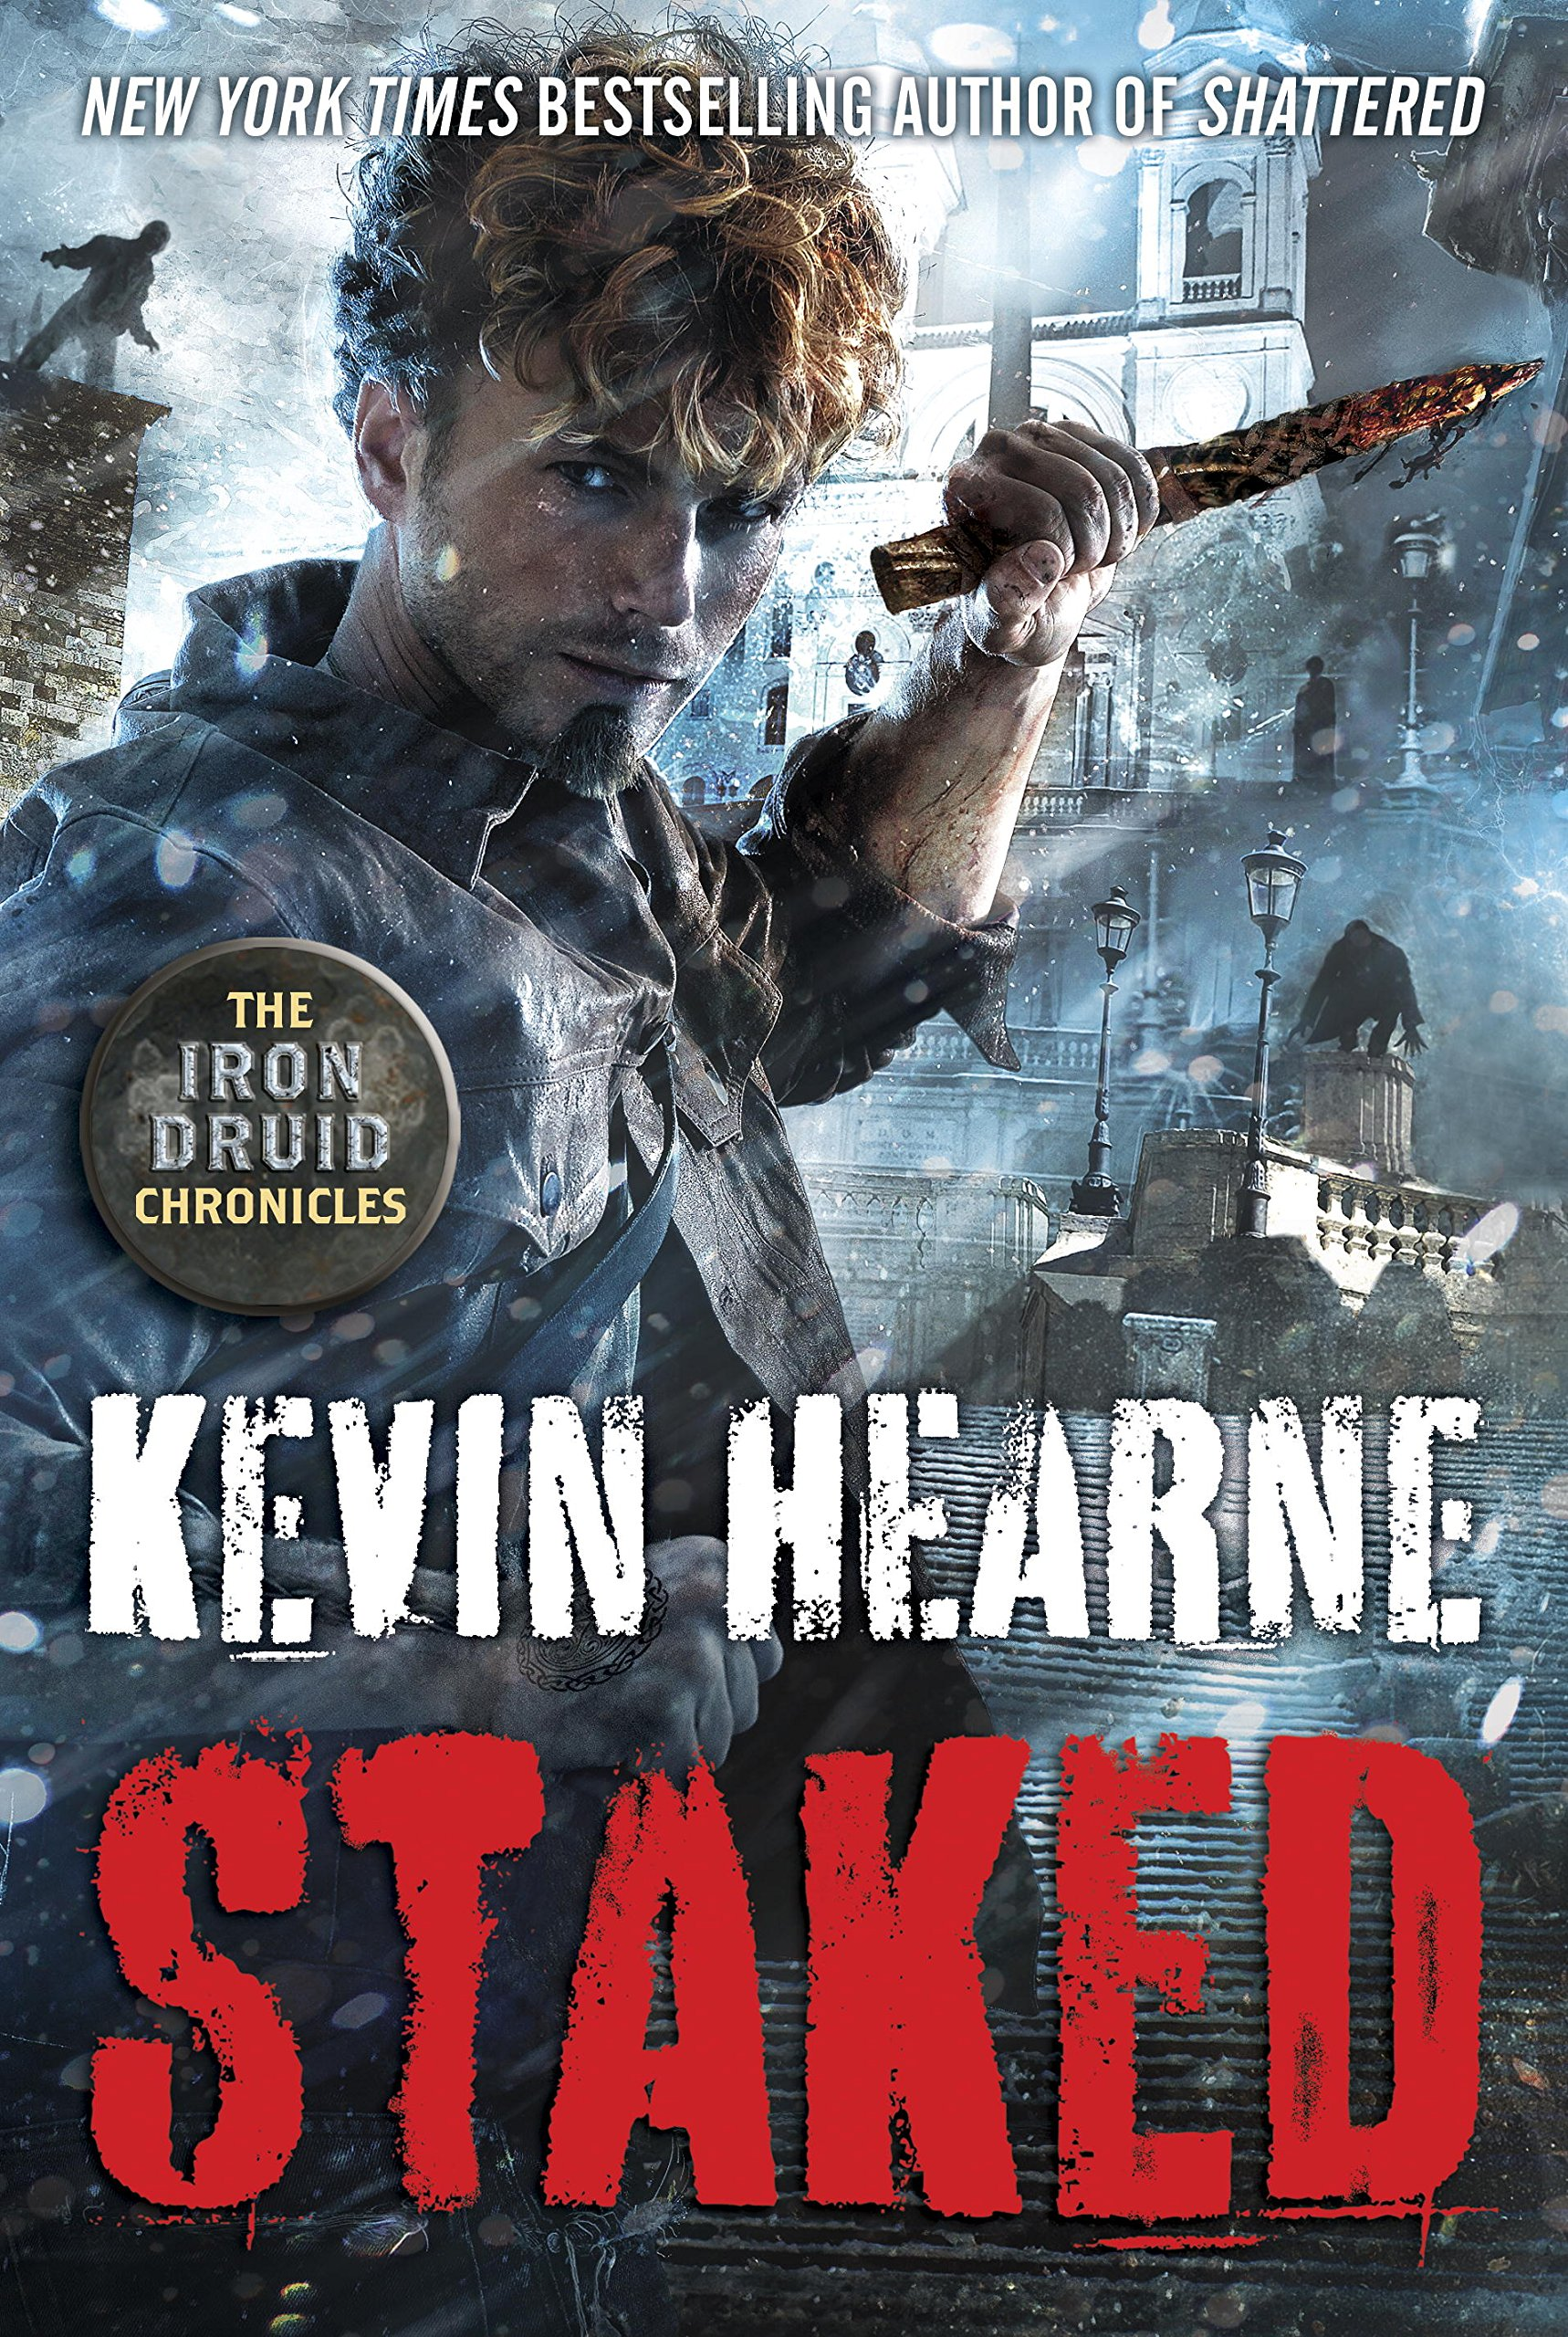 Druid Chronicles 08 - Staked - Kevin Hearne